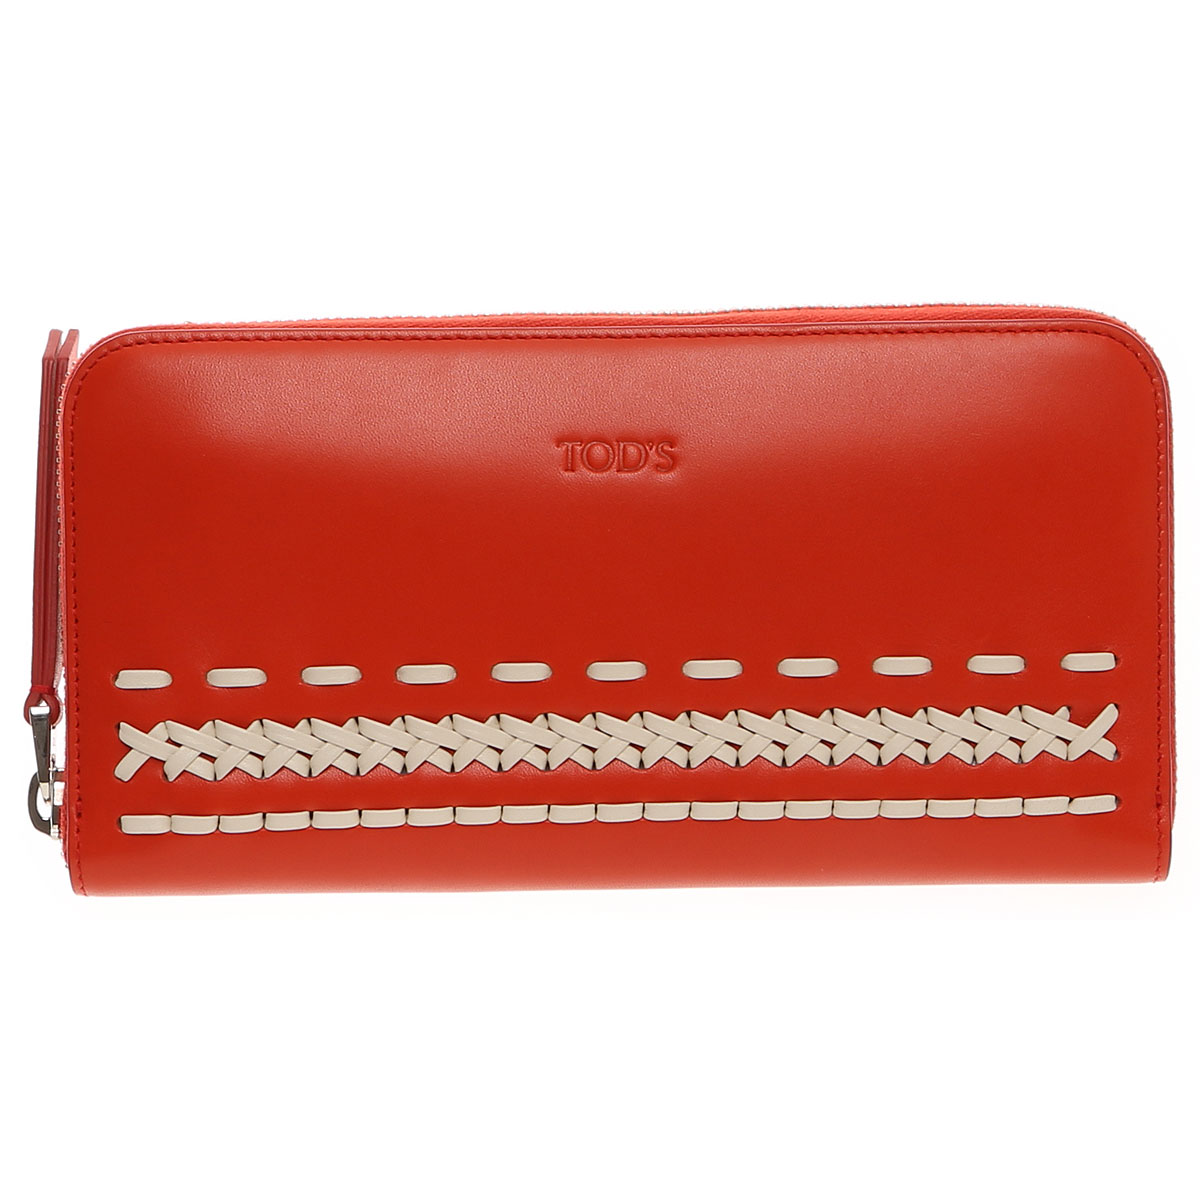 Tods Wallet for Women Red USA - GOOFASH